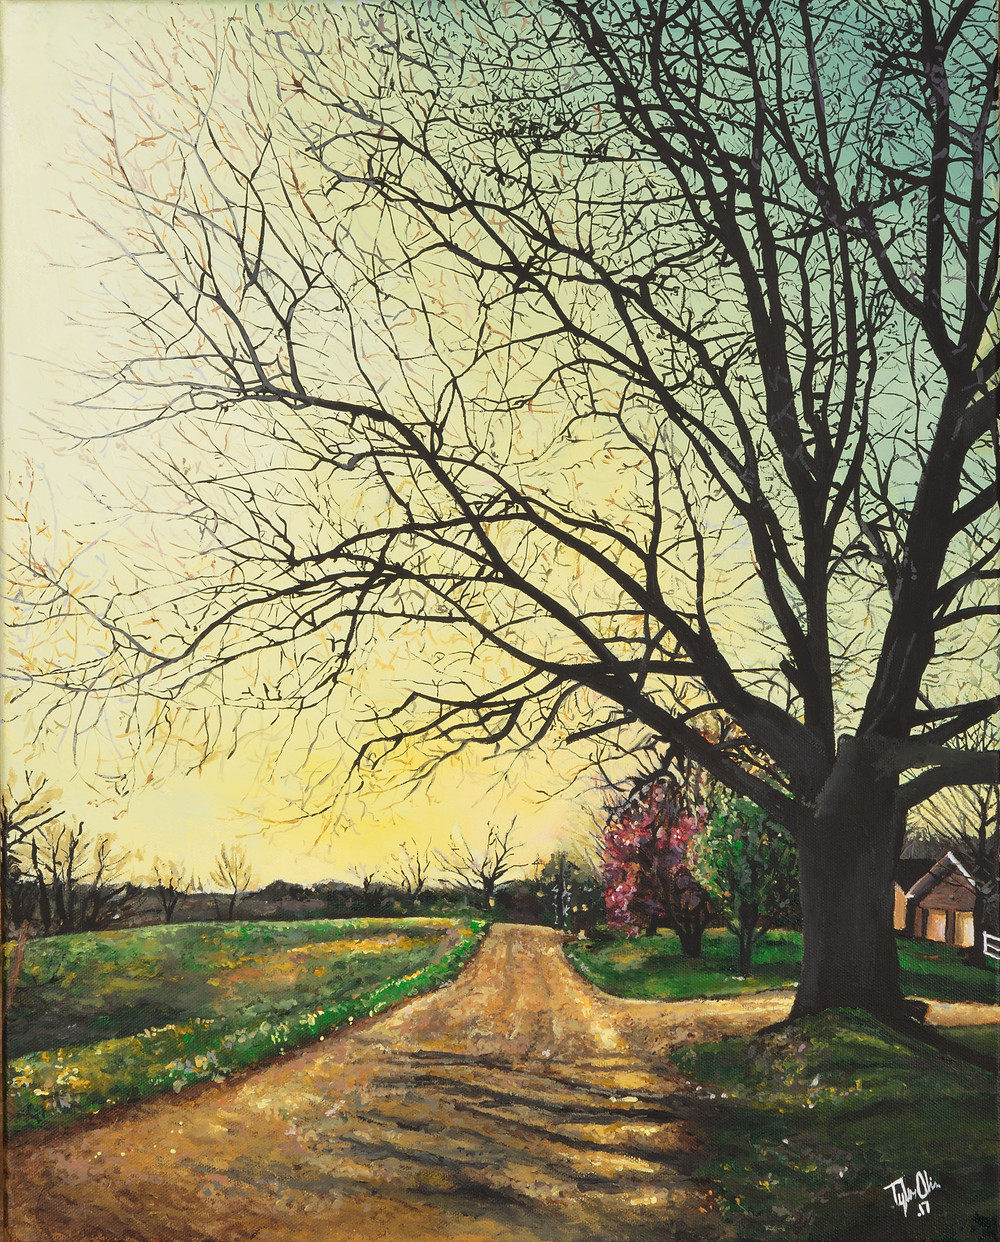 A Realistic acrylic landscape painting of a dirt road and a tree